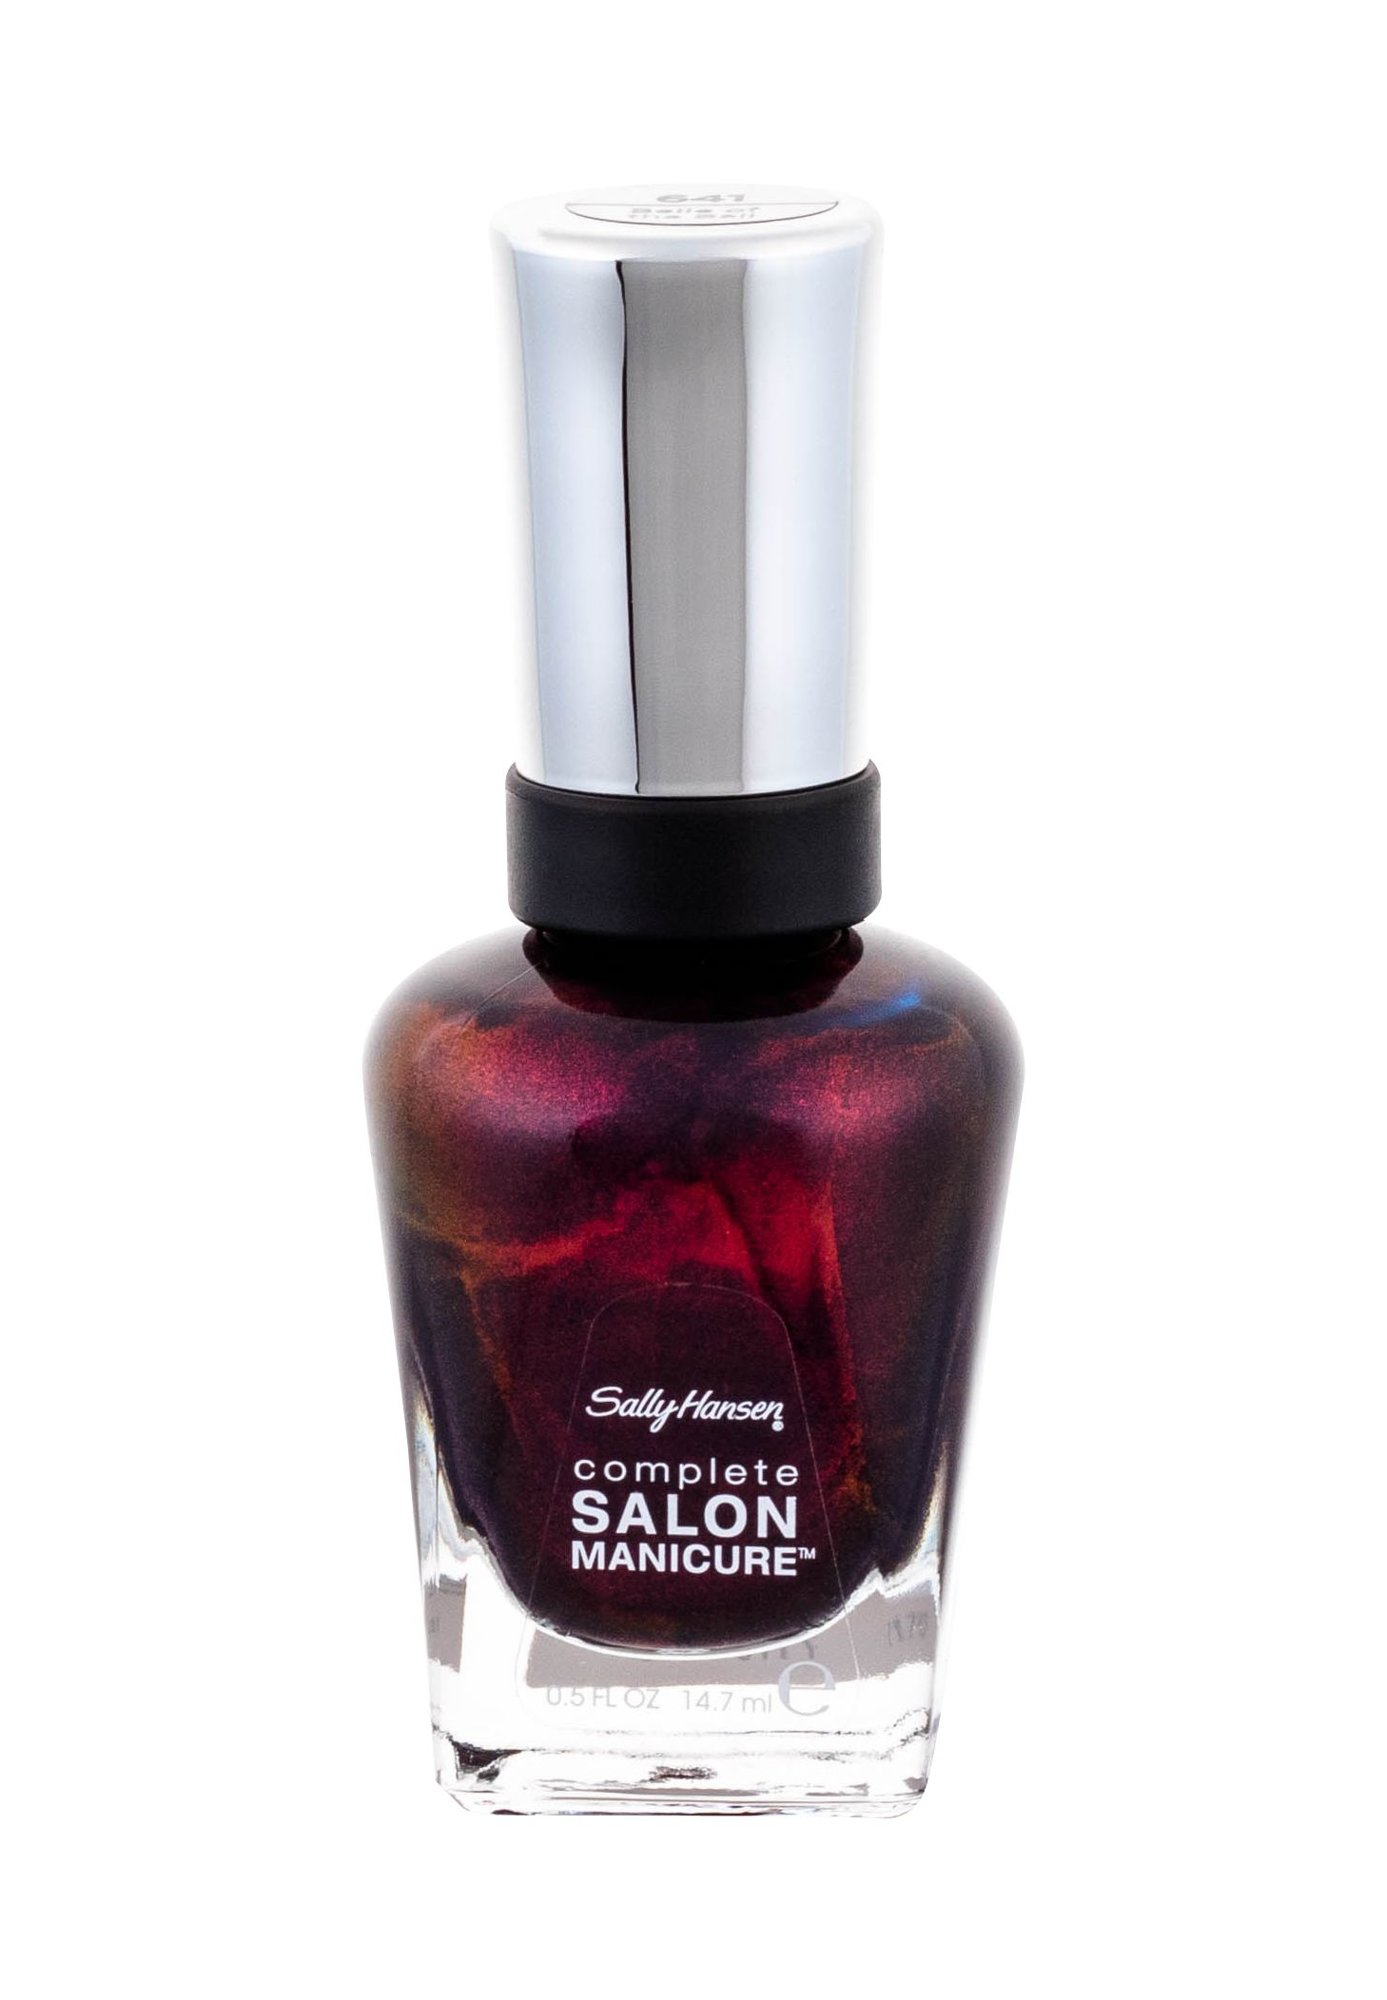 Sally Hansen Complete Salon Manicure Cosmetic 14,7ml 641 Belle Of The Ball